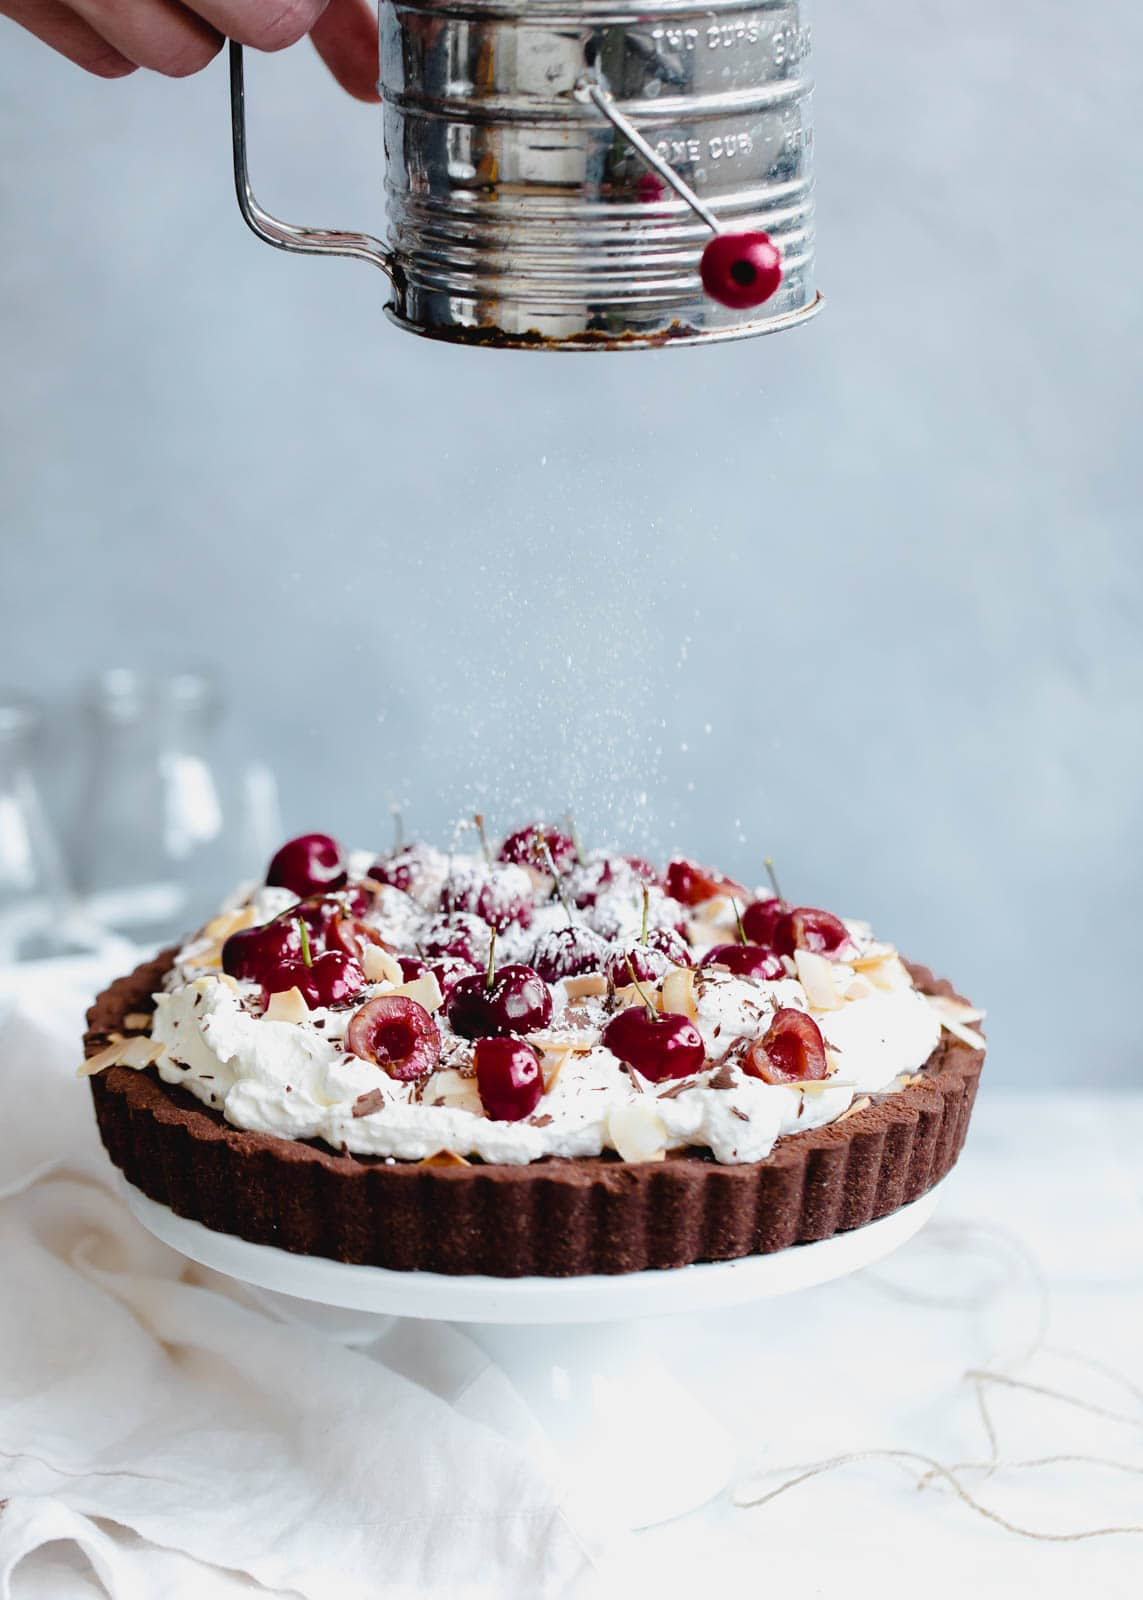 A take on Black Forest Cake, this fudge-like chocolate cherry tart is topped with whipped cream, toasted coconut, and fresh cherries.